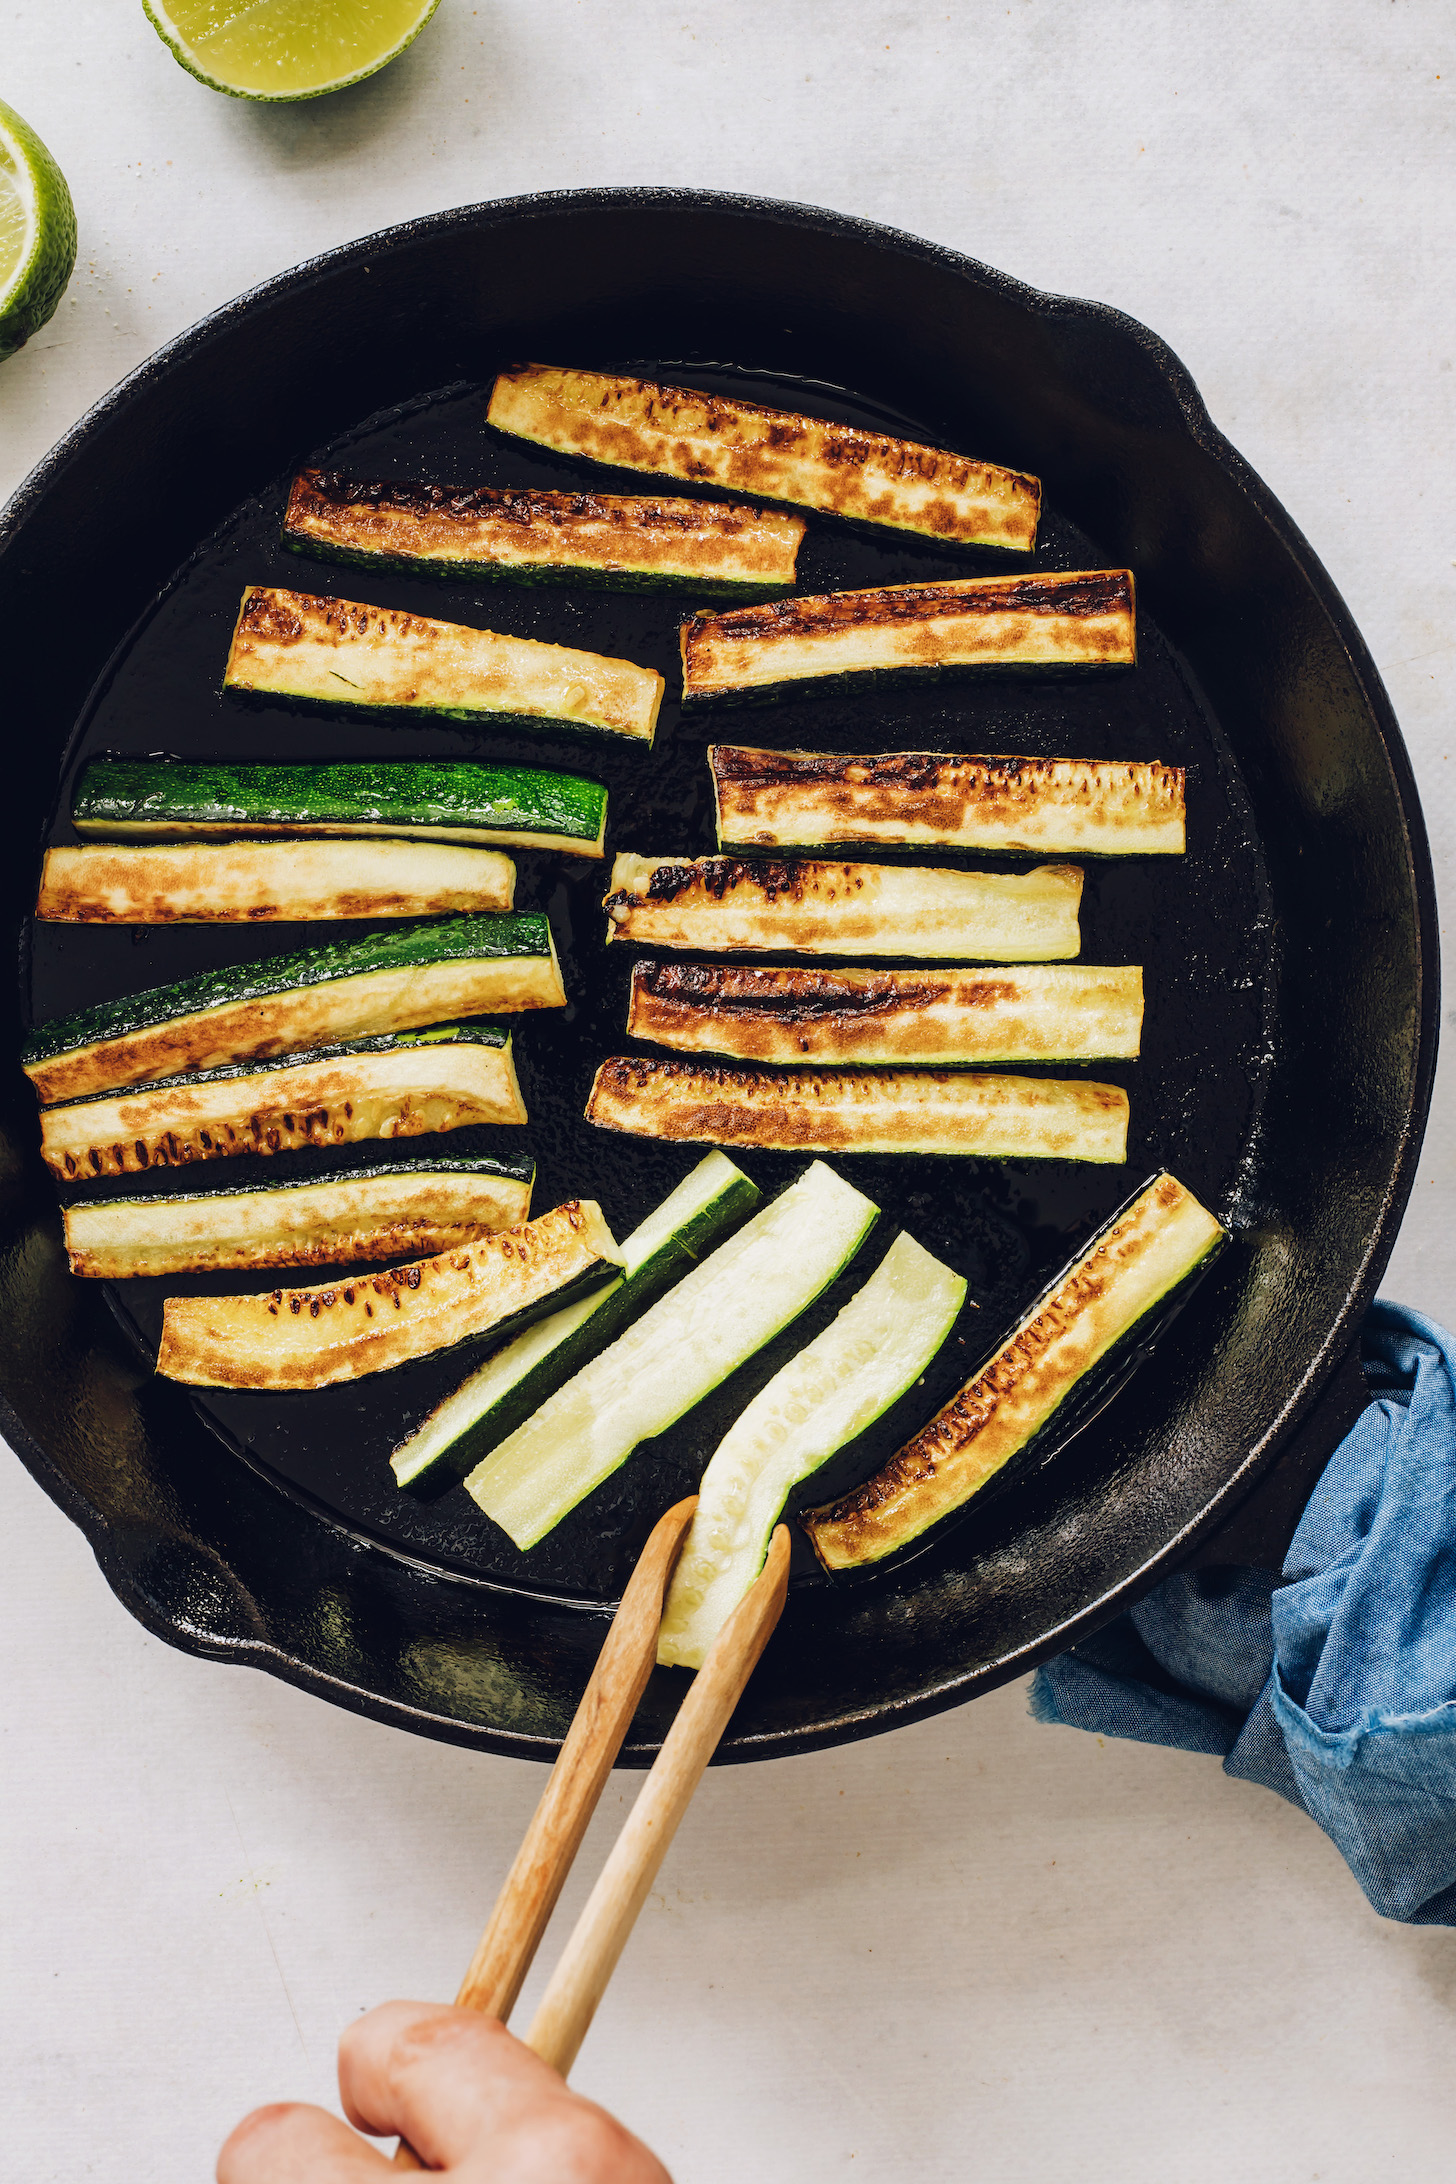 Cooking zucchini slices in a cast iron skillet